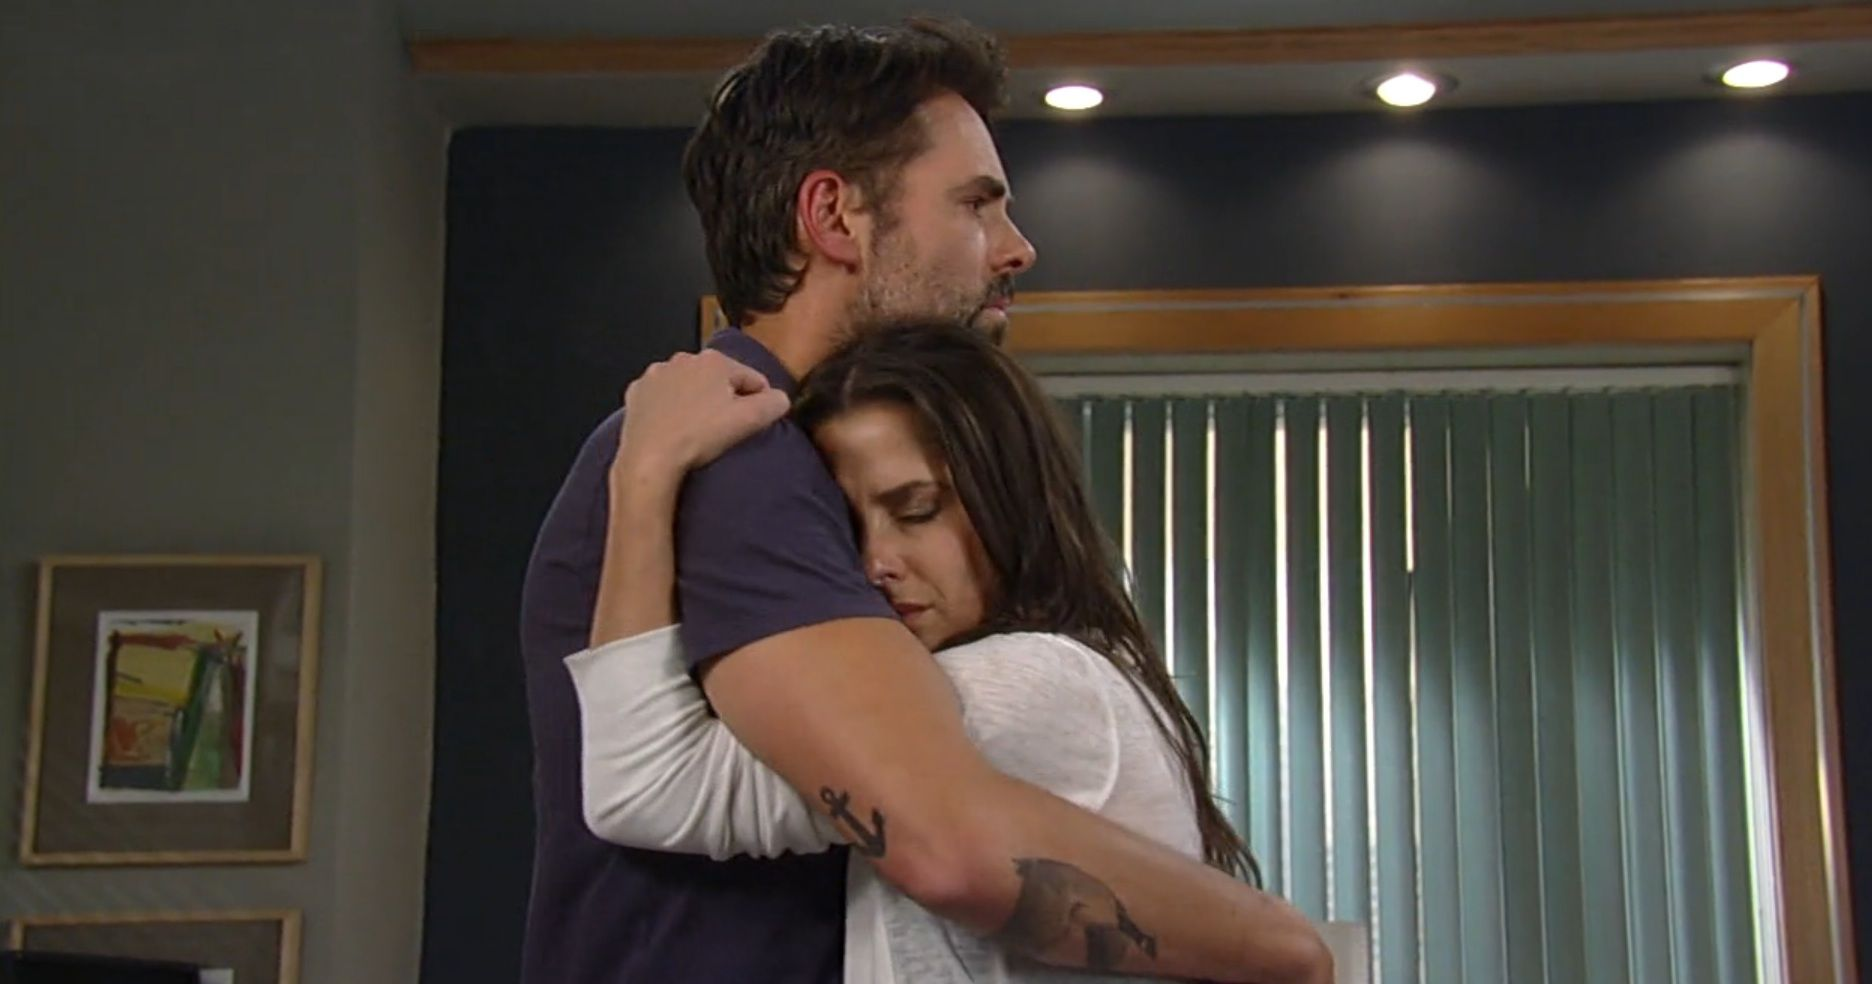 KERRY: Who is sam dating on general hospital